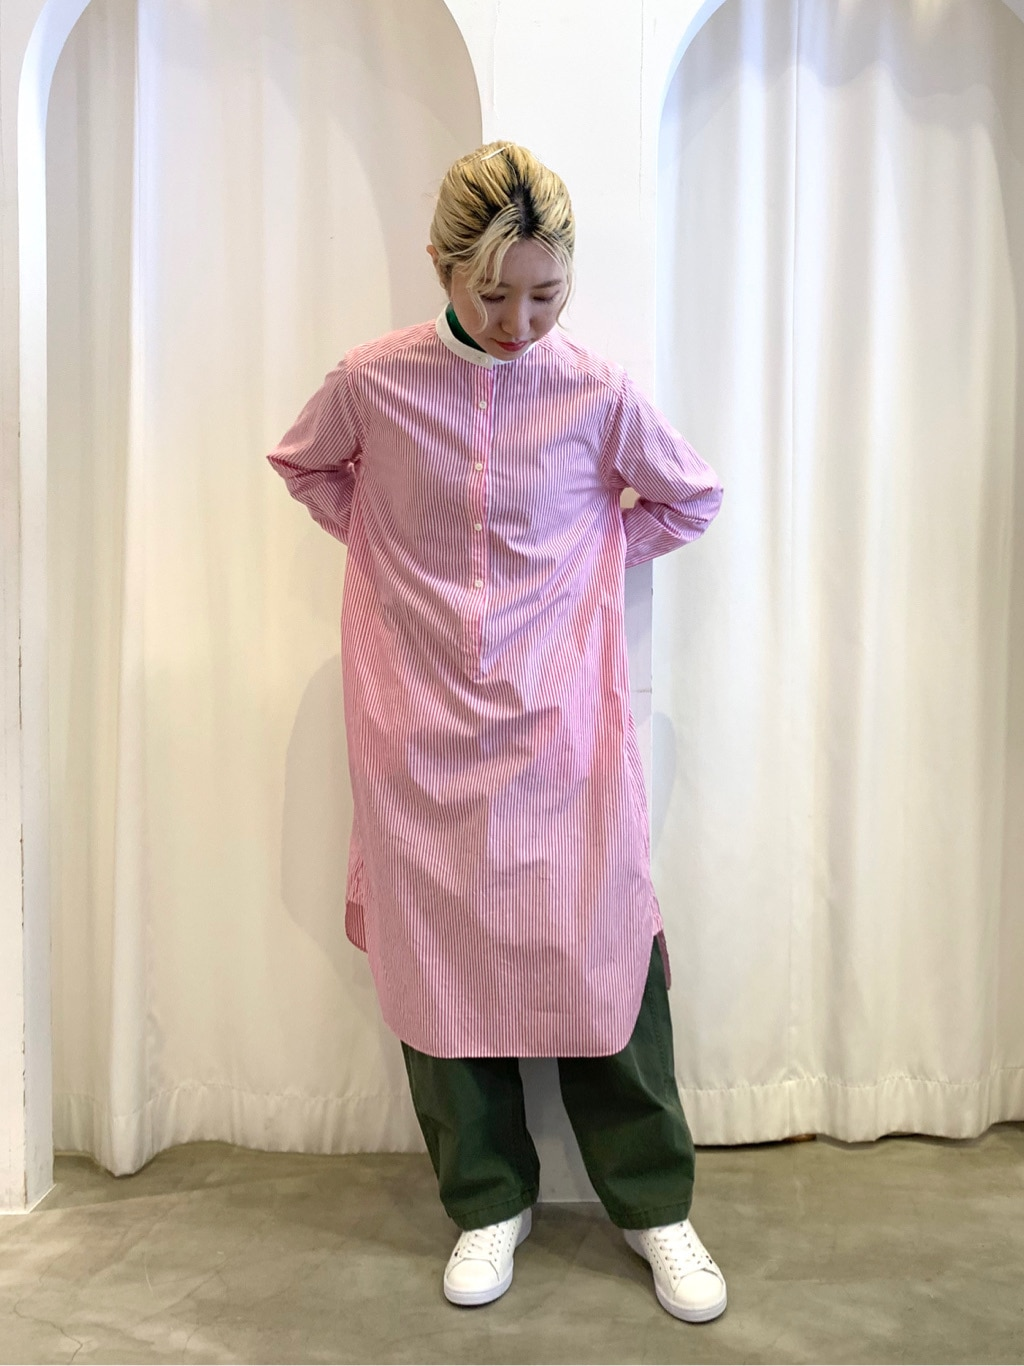 Dot and Stripes CHILD WOMAN ラフォーレ原宿 身長:160cm 2021.01.06